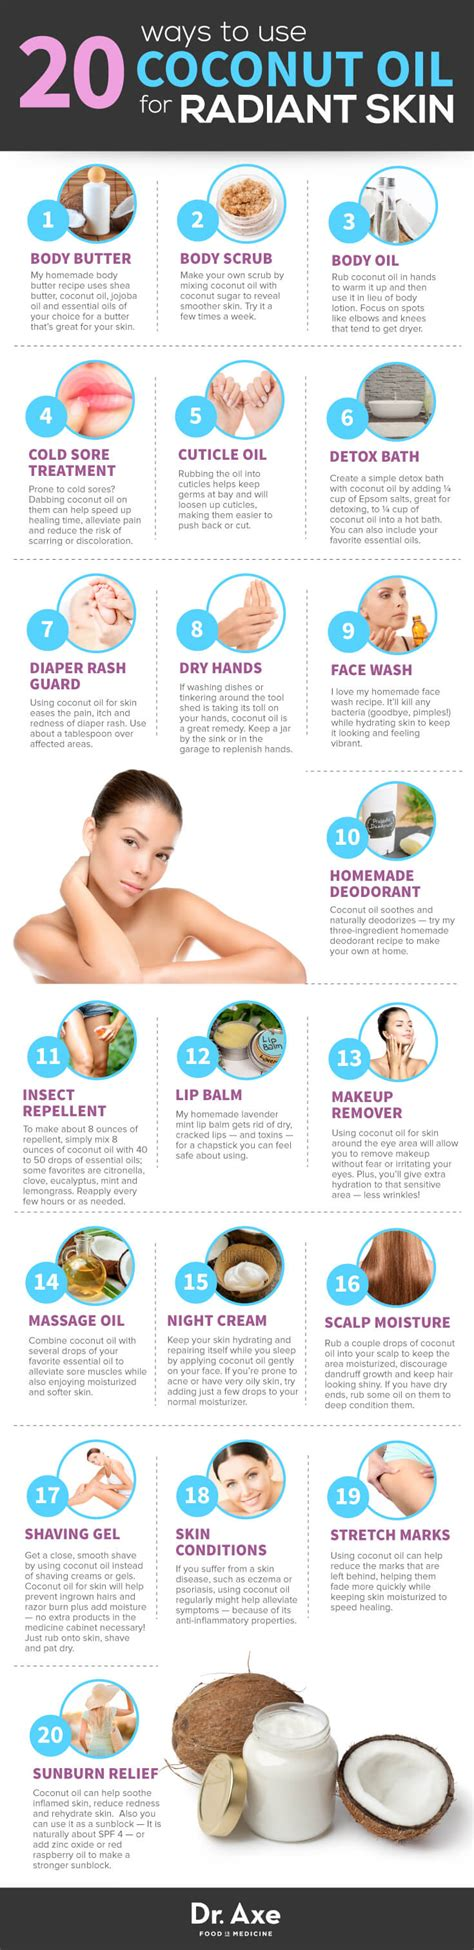 20 Secret Ways To Use Coconut Oil For Skin  Dr Axe